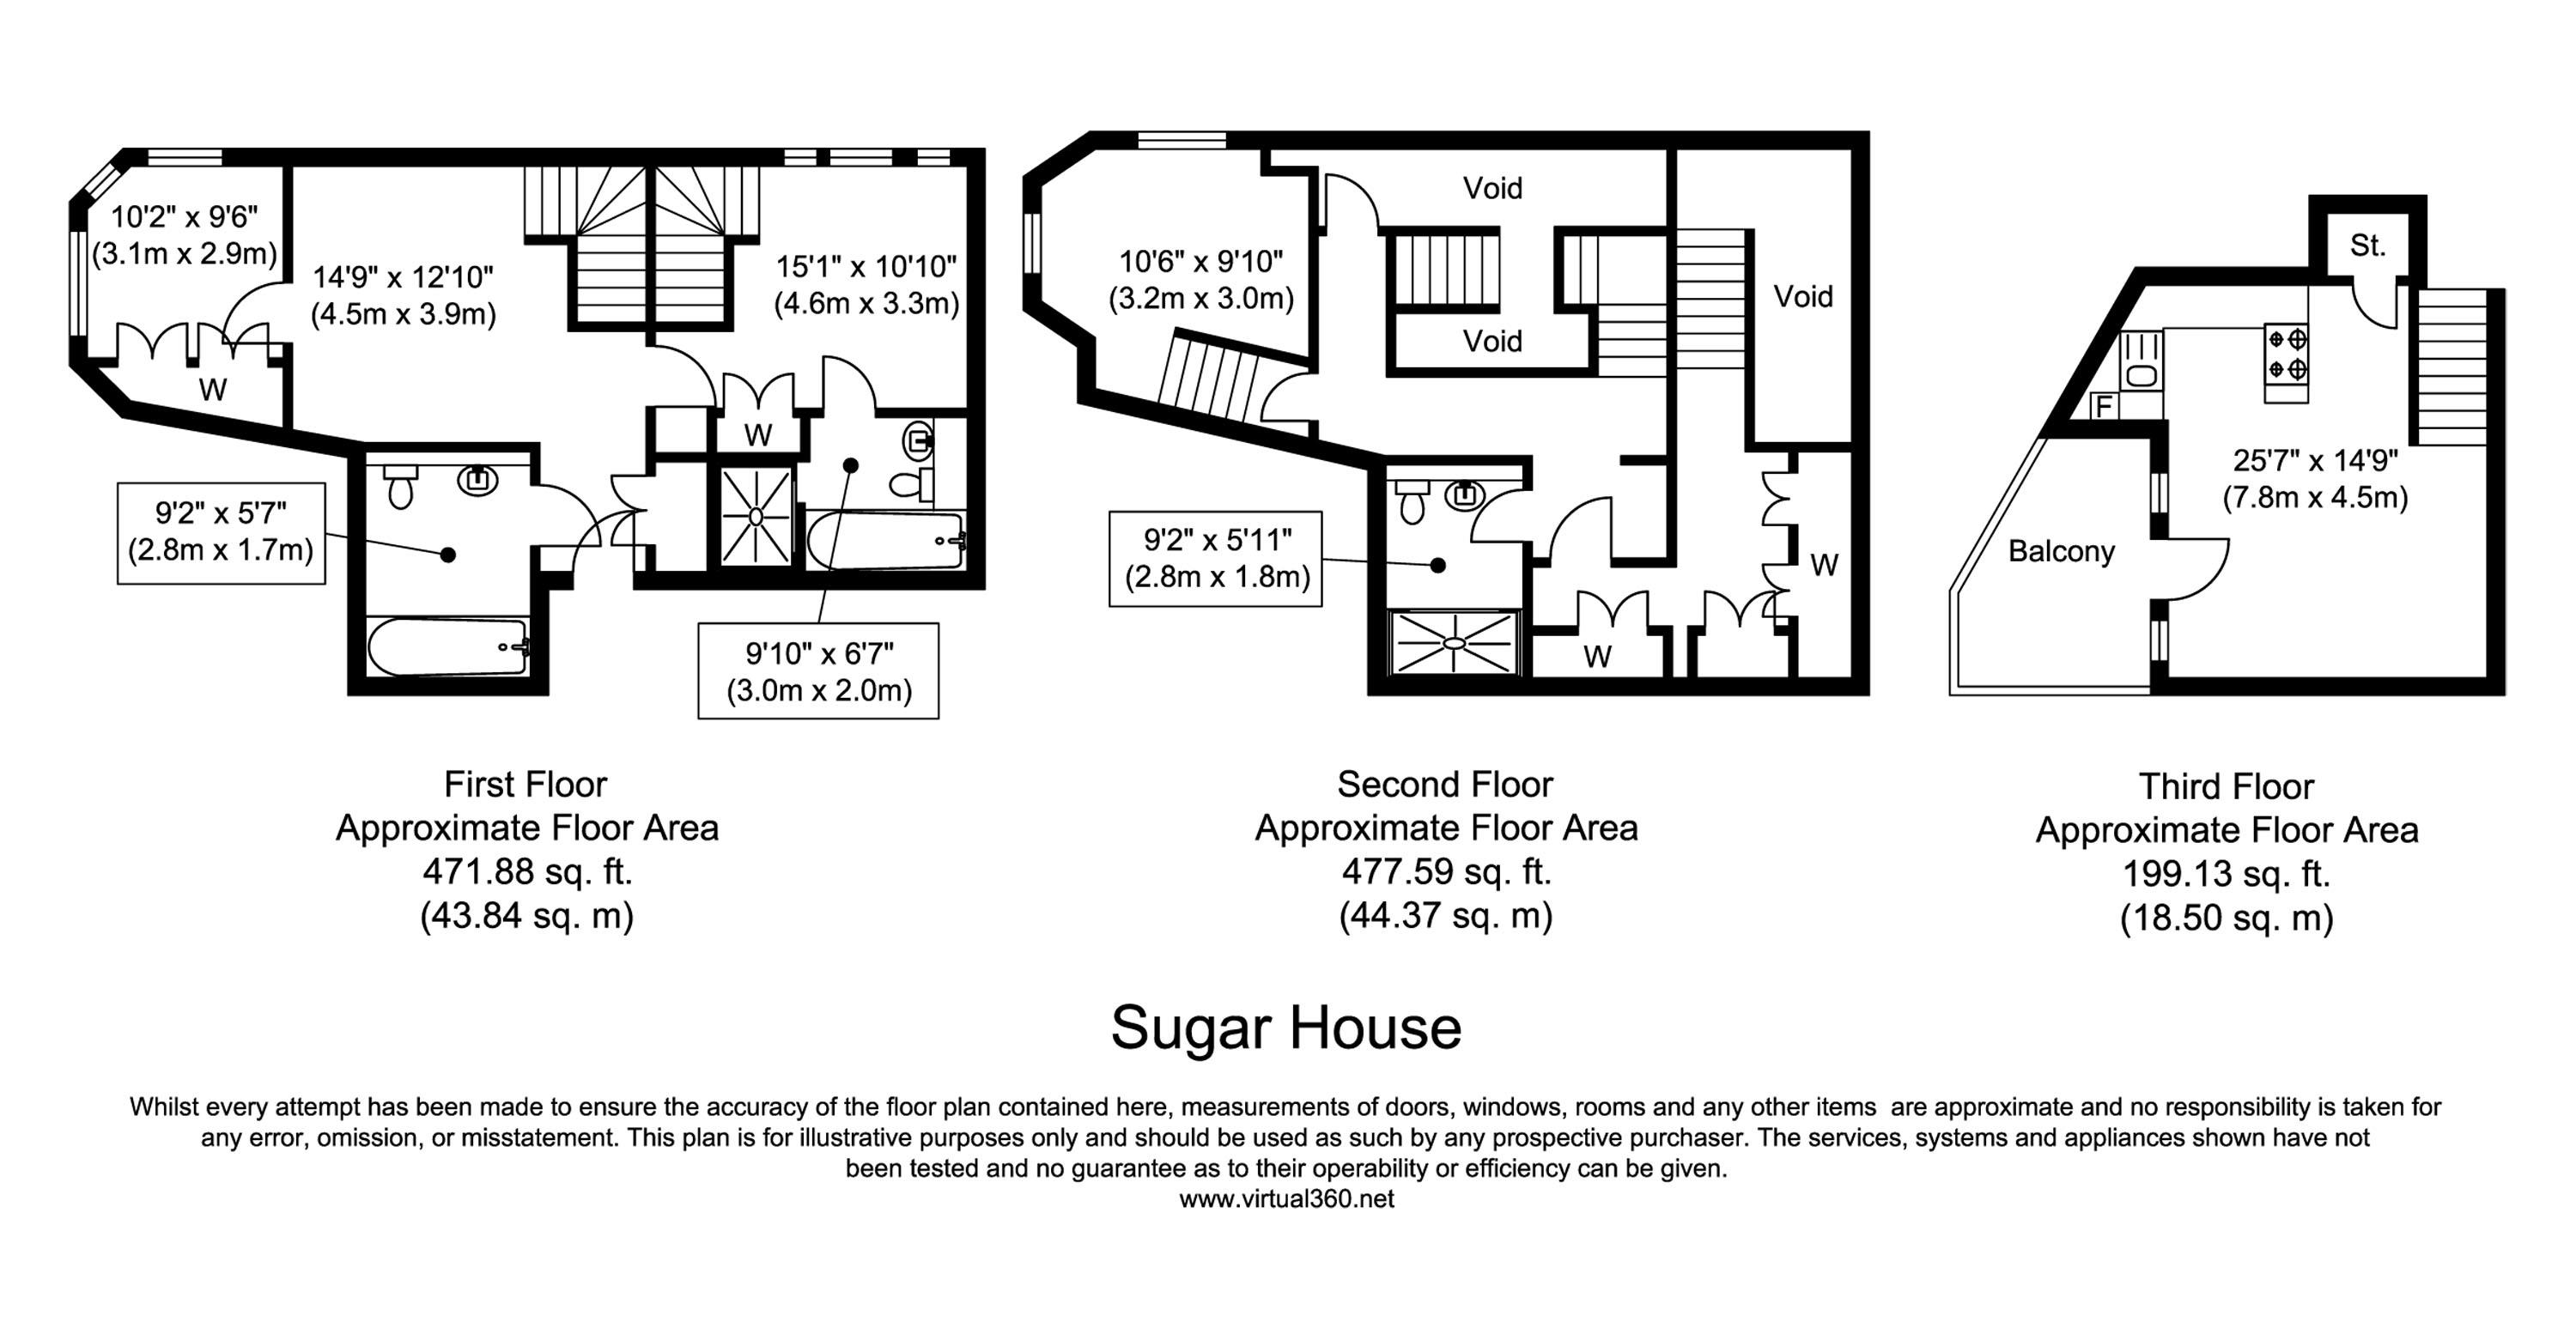 Floorplan for the property 3 bed Apartment to rent in Sugar House, London E1 - 1